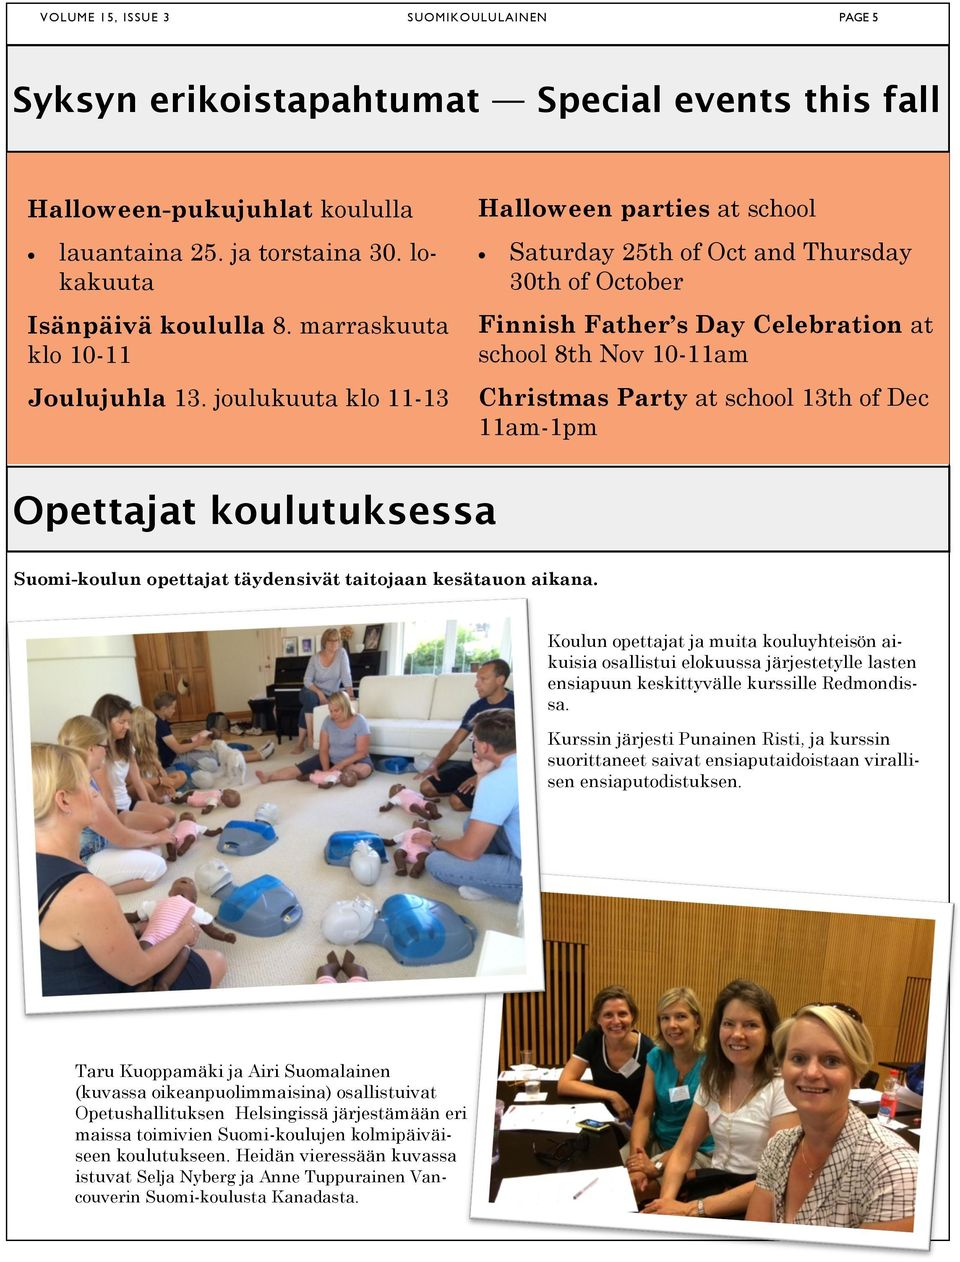 joulukuuta klo 11-13 Halloween parties at school Saturday 25th of Oct and Thursday 30th of October Finnish Father s Day Celebration at school 8th Nov 10-11am Christmas Party at school 13th of Dec